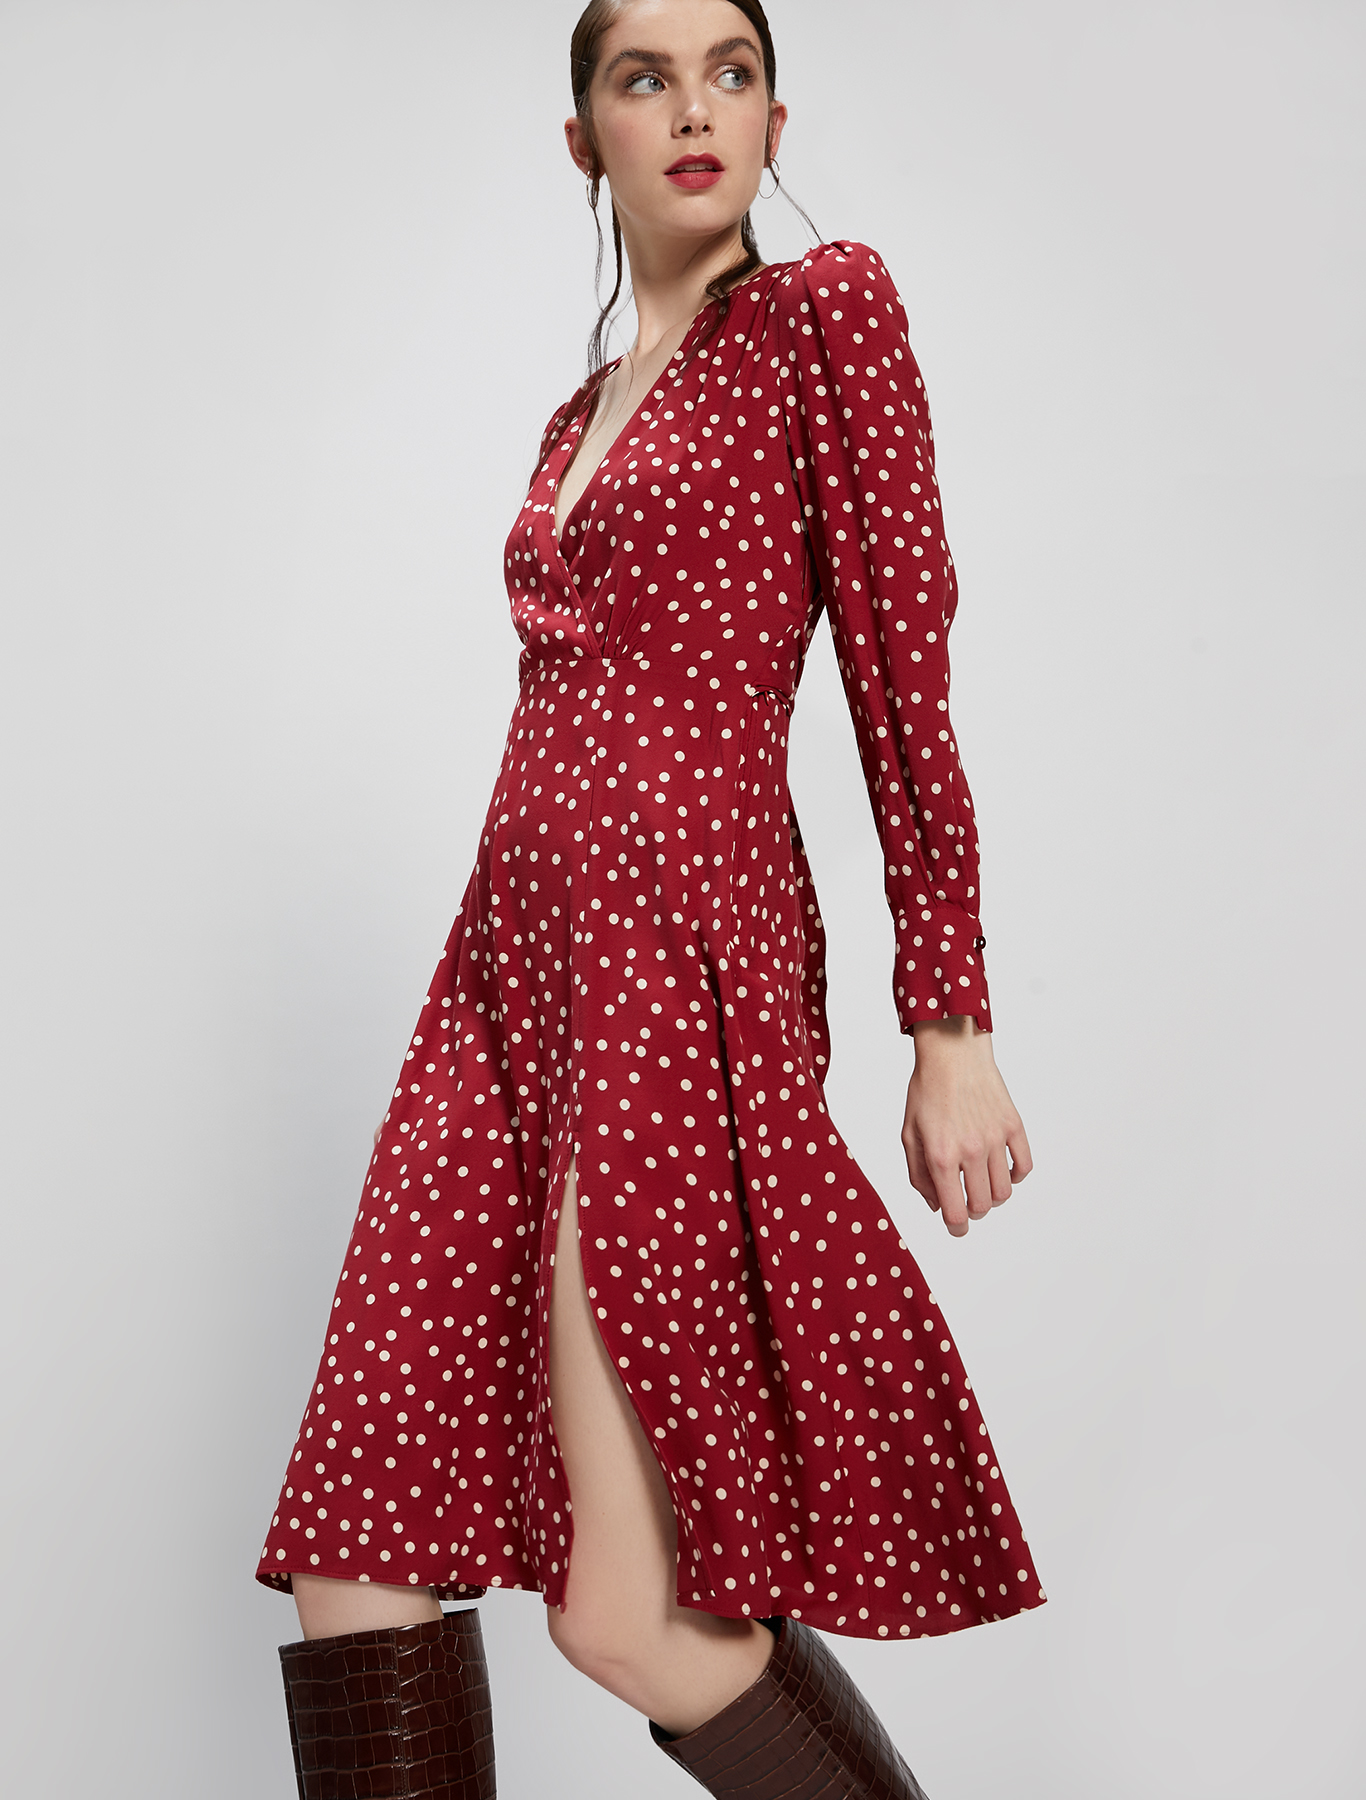 Polka dot sablé dress - burgundy pattern - pennyblack